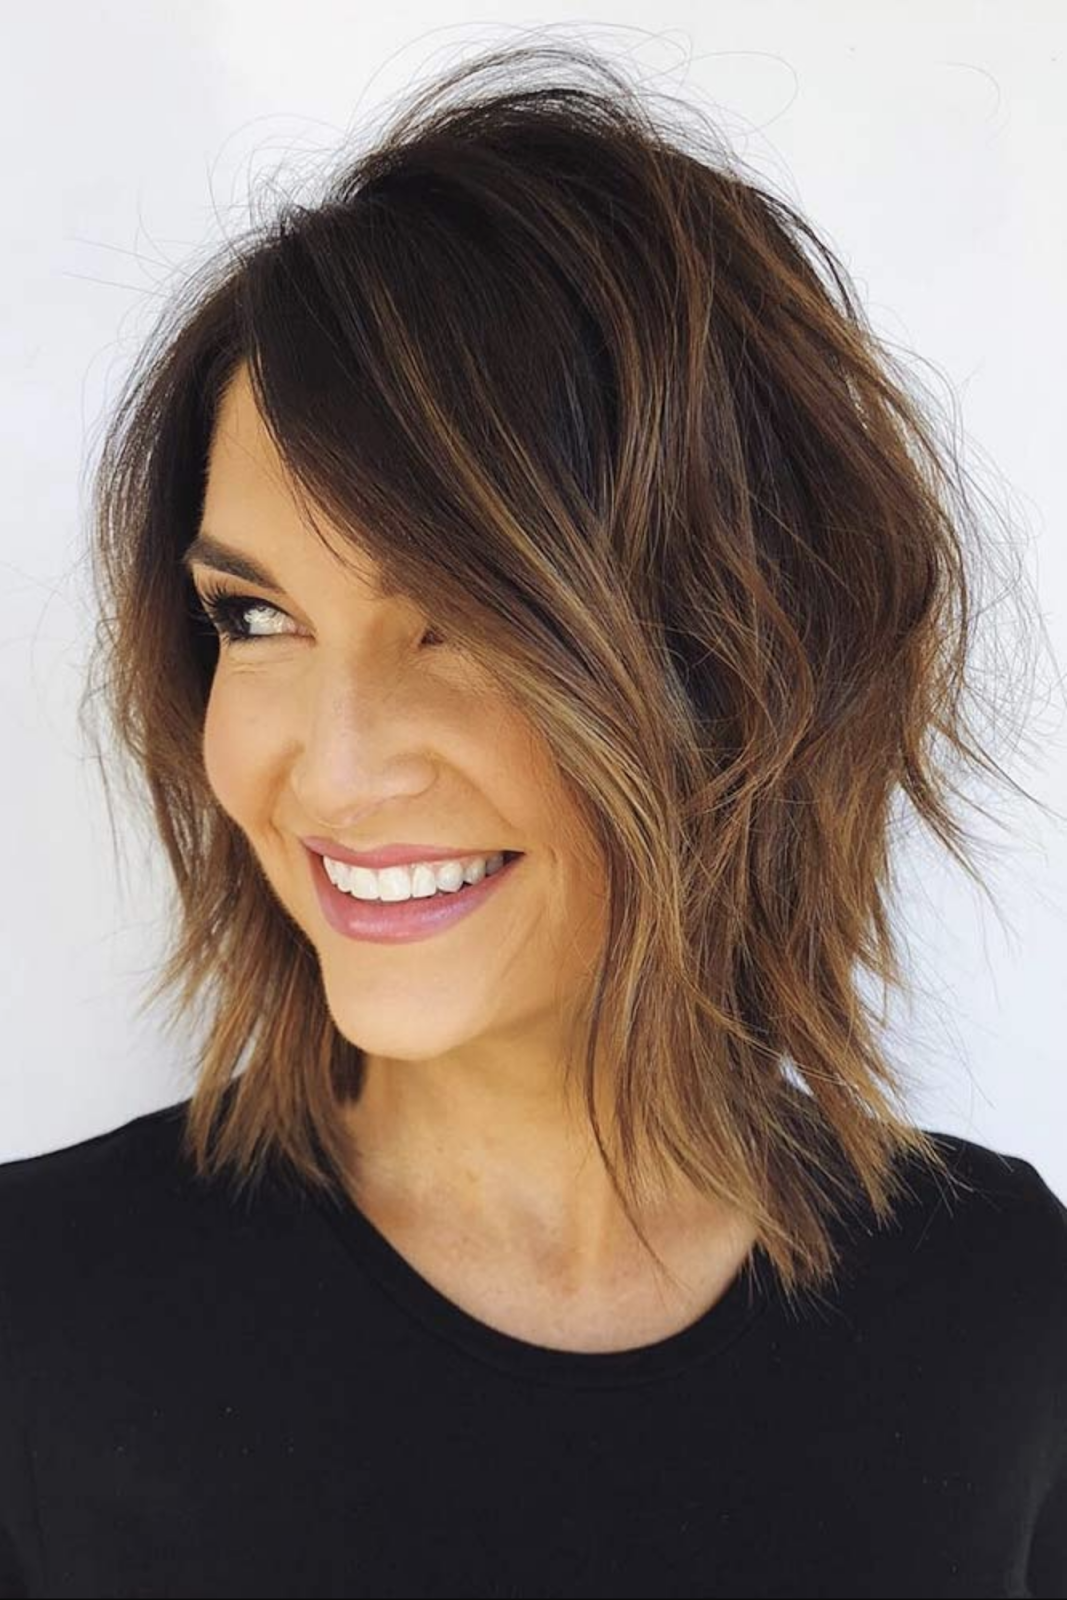 2019  2020 Short Hairstyles for Women Over 50 That Are Cool Forever  LatestHairstylePedia.com